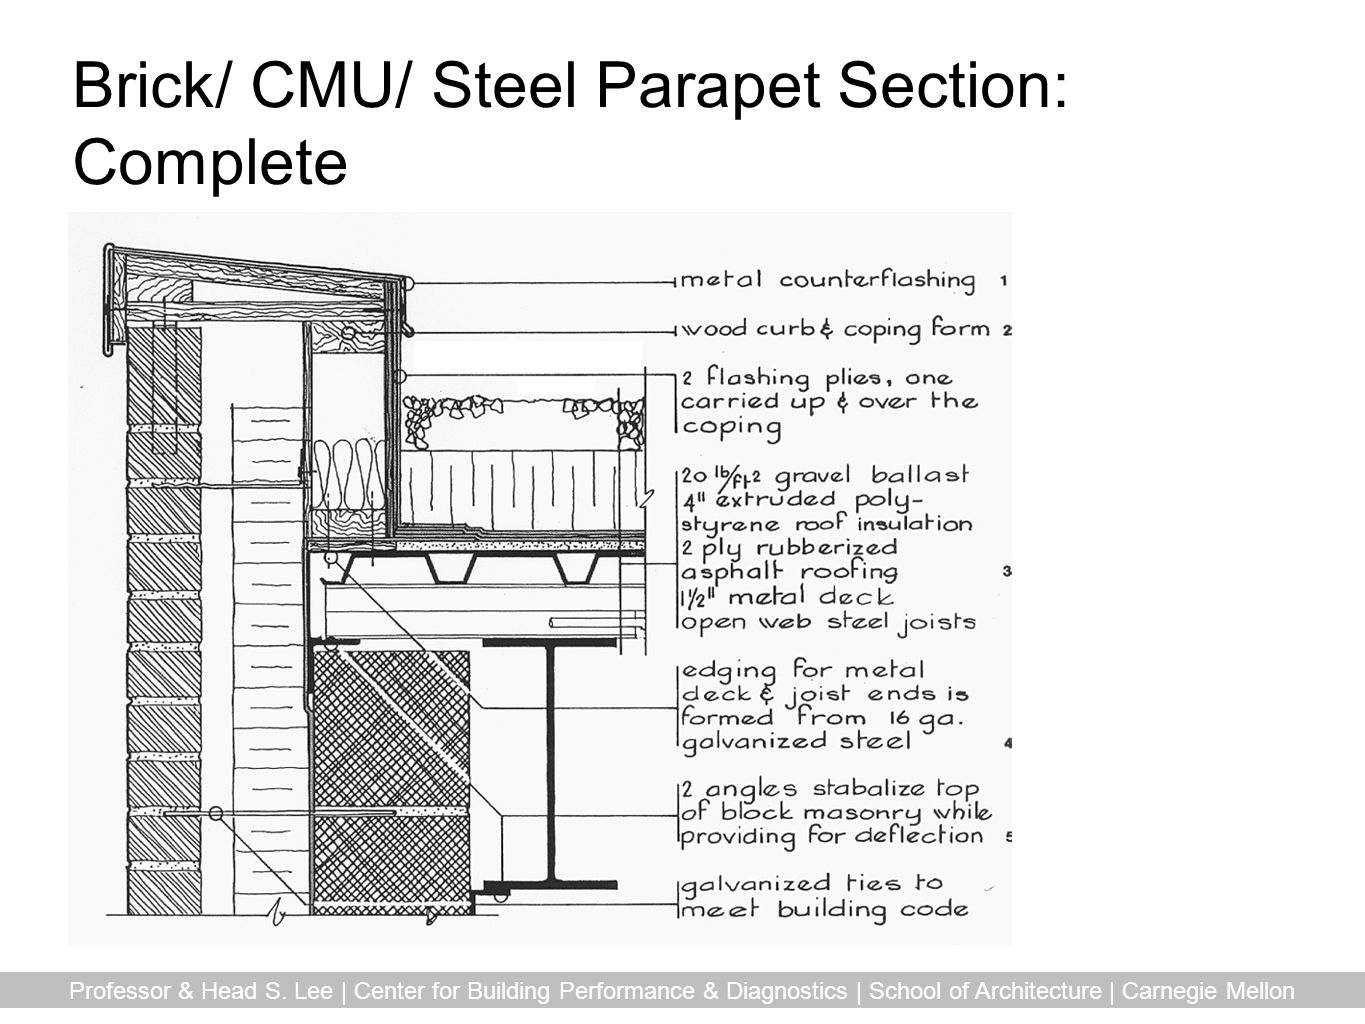 Brick/ CMU/ Steel Parapet Section: Complete